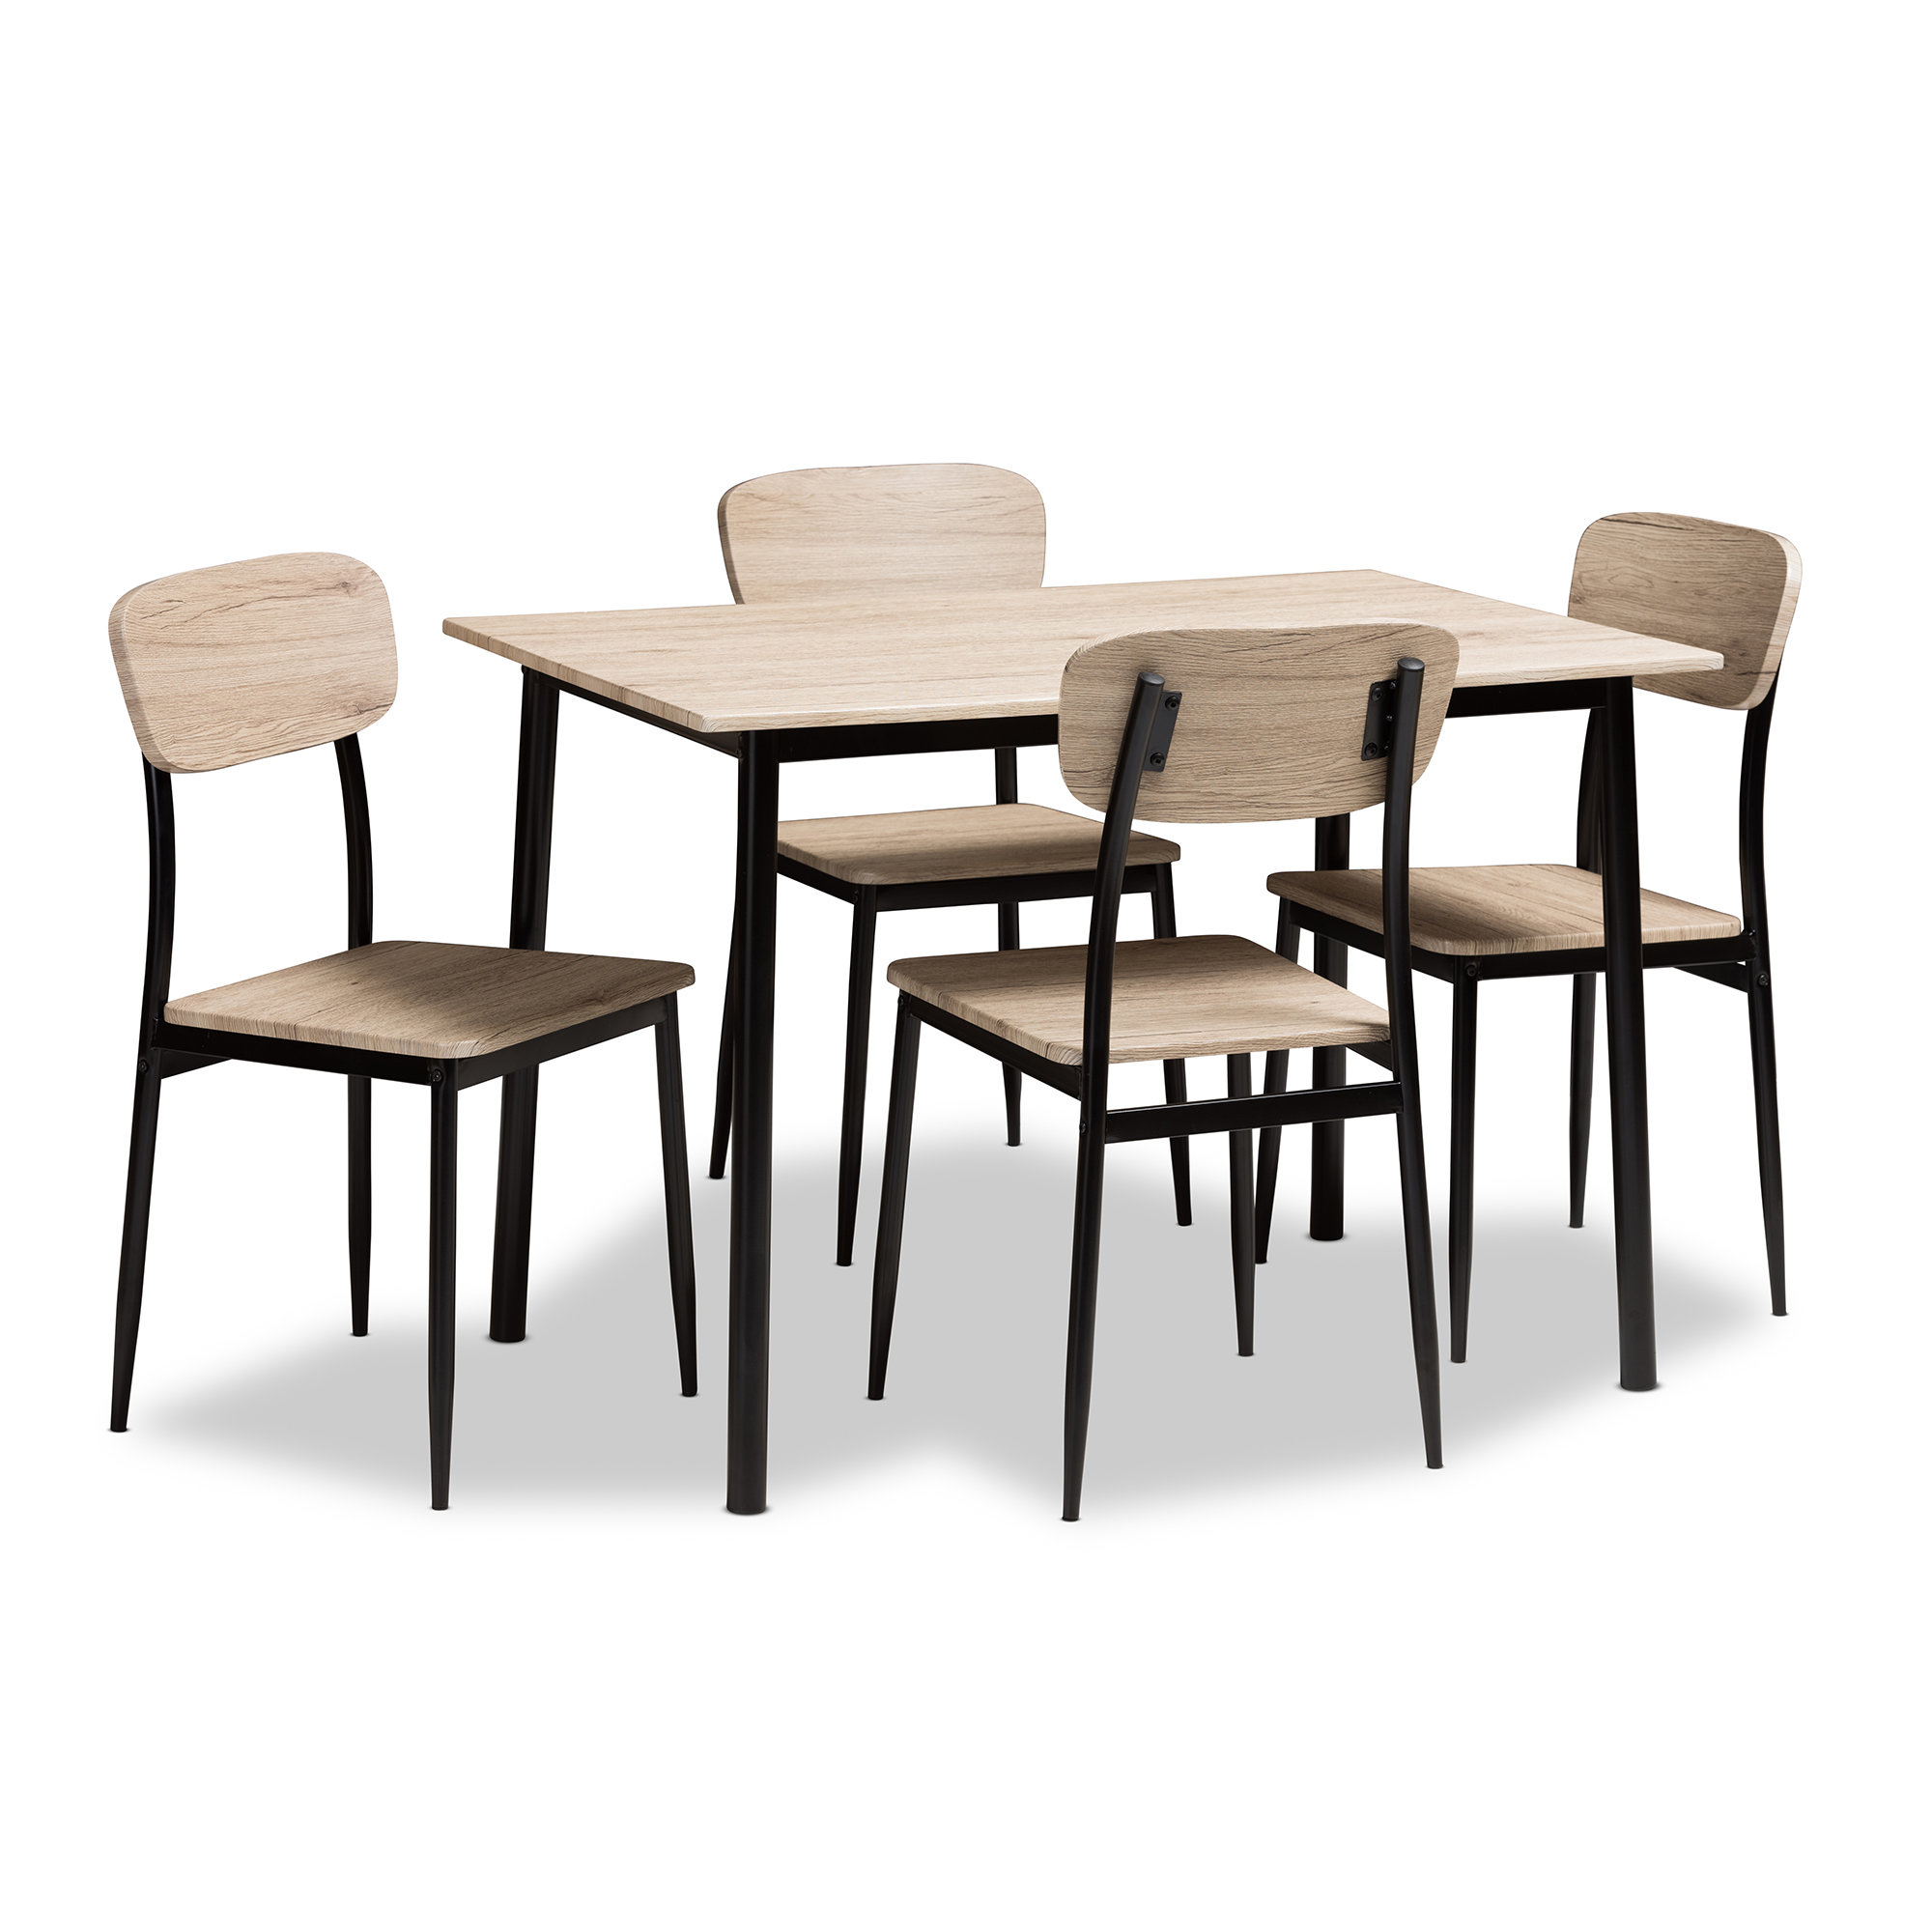 Favorite Wiggs 5 Piece Dining Set In Kaelin 5 Piece Dining Sets (Gallery 4 of 20)